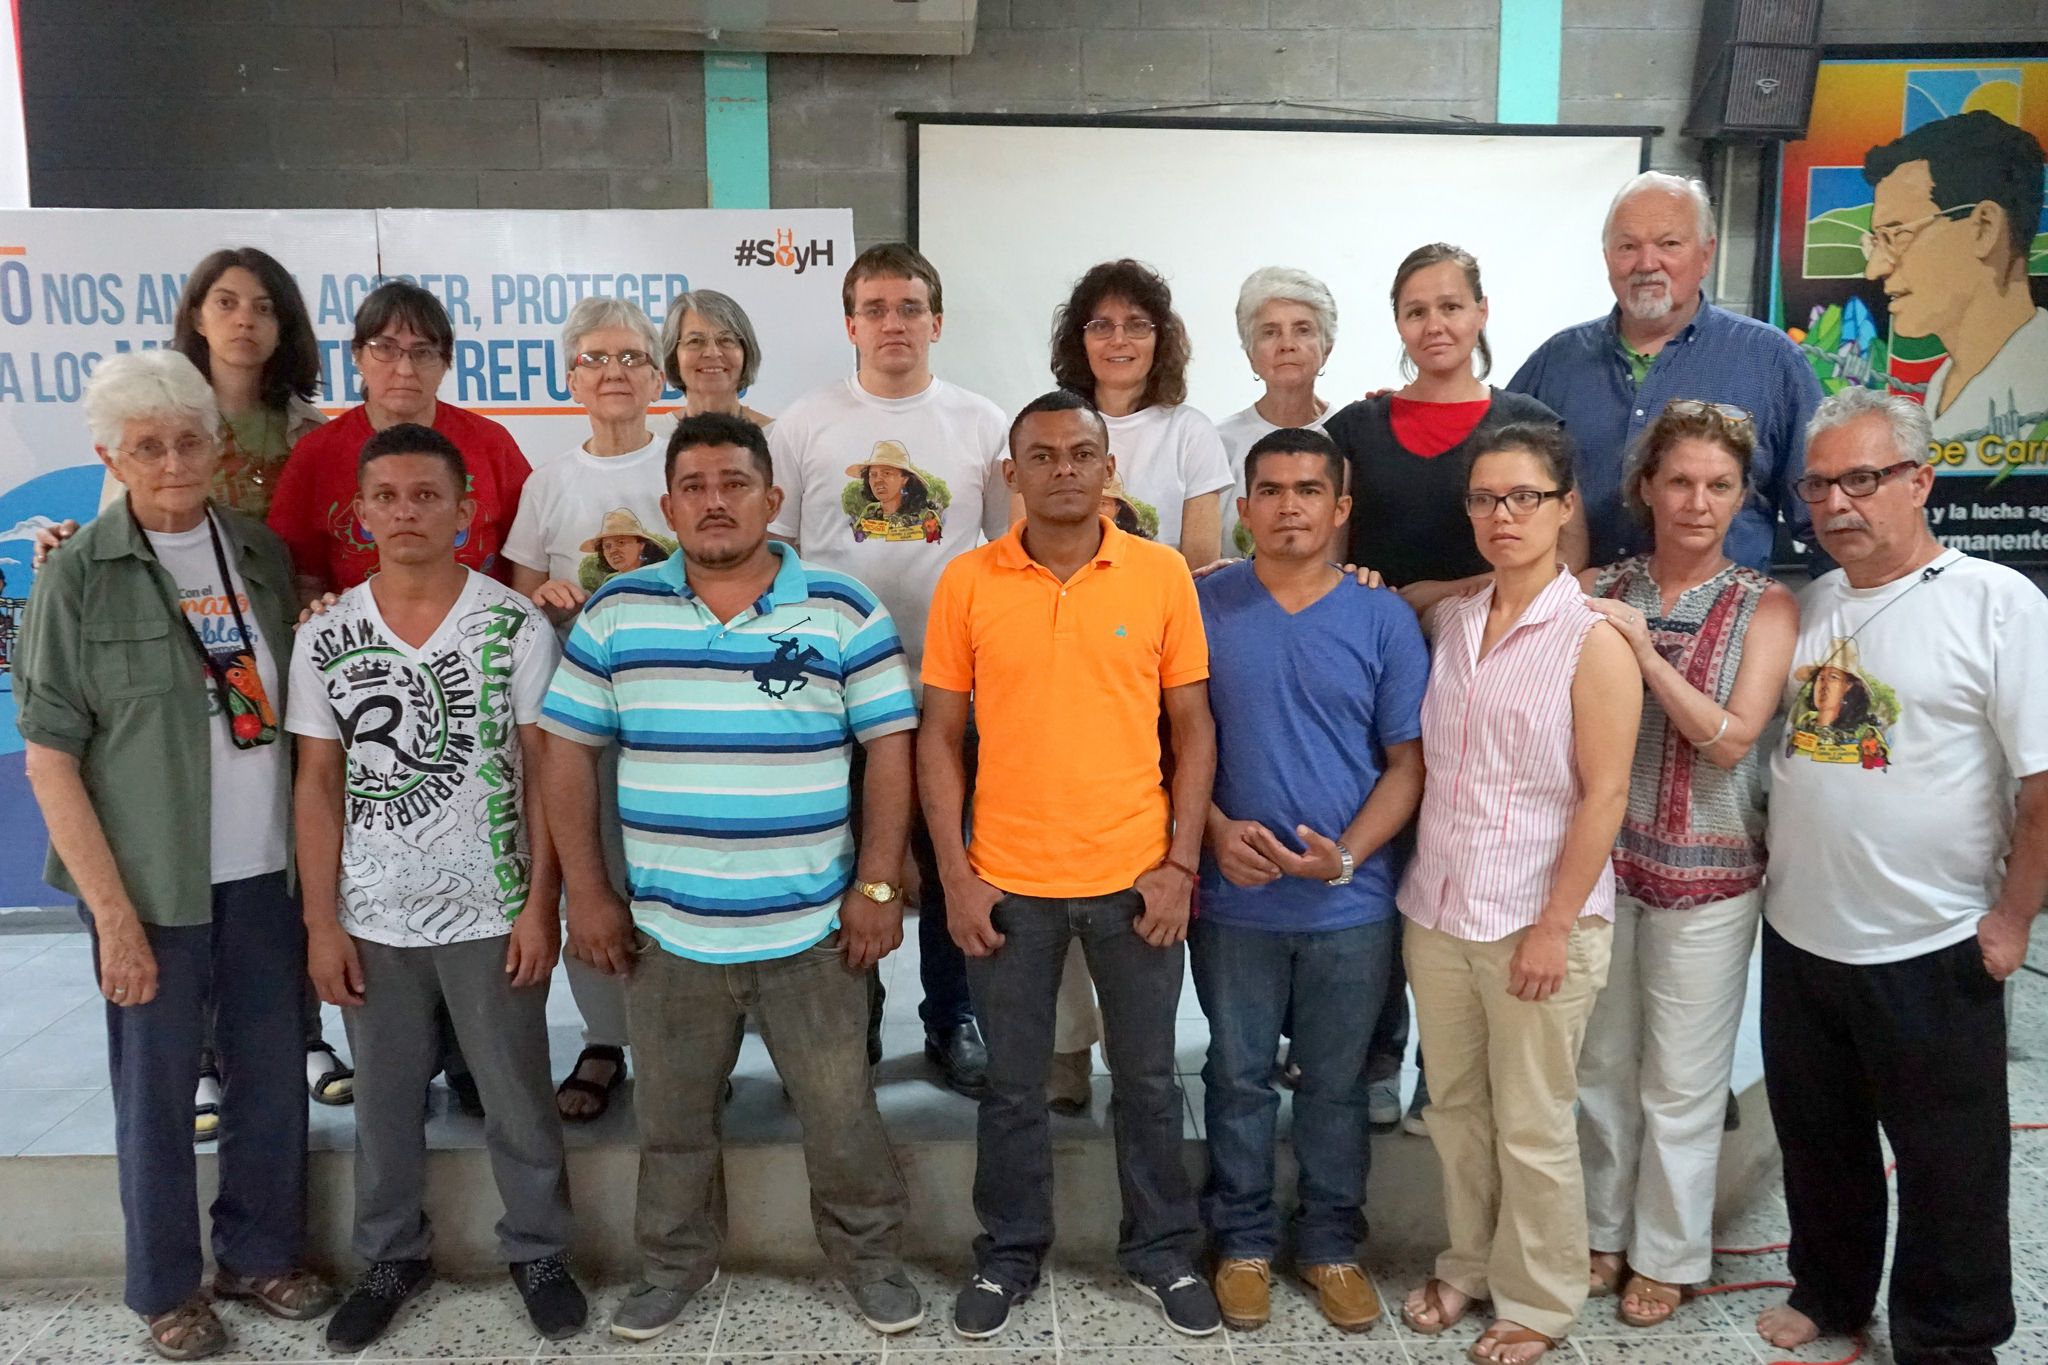 Presbey, center, with political prisoners in Progreso, Honduras.